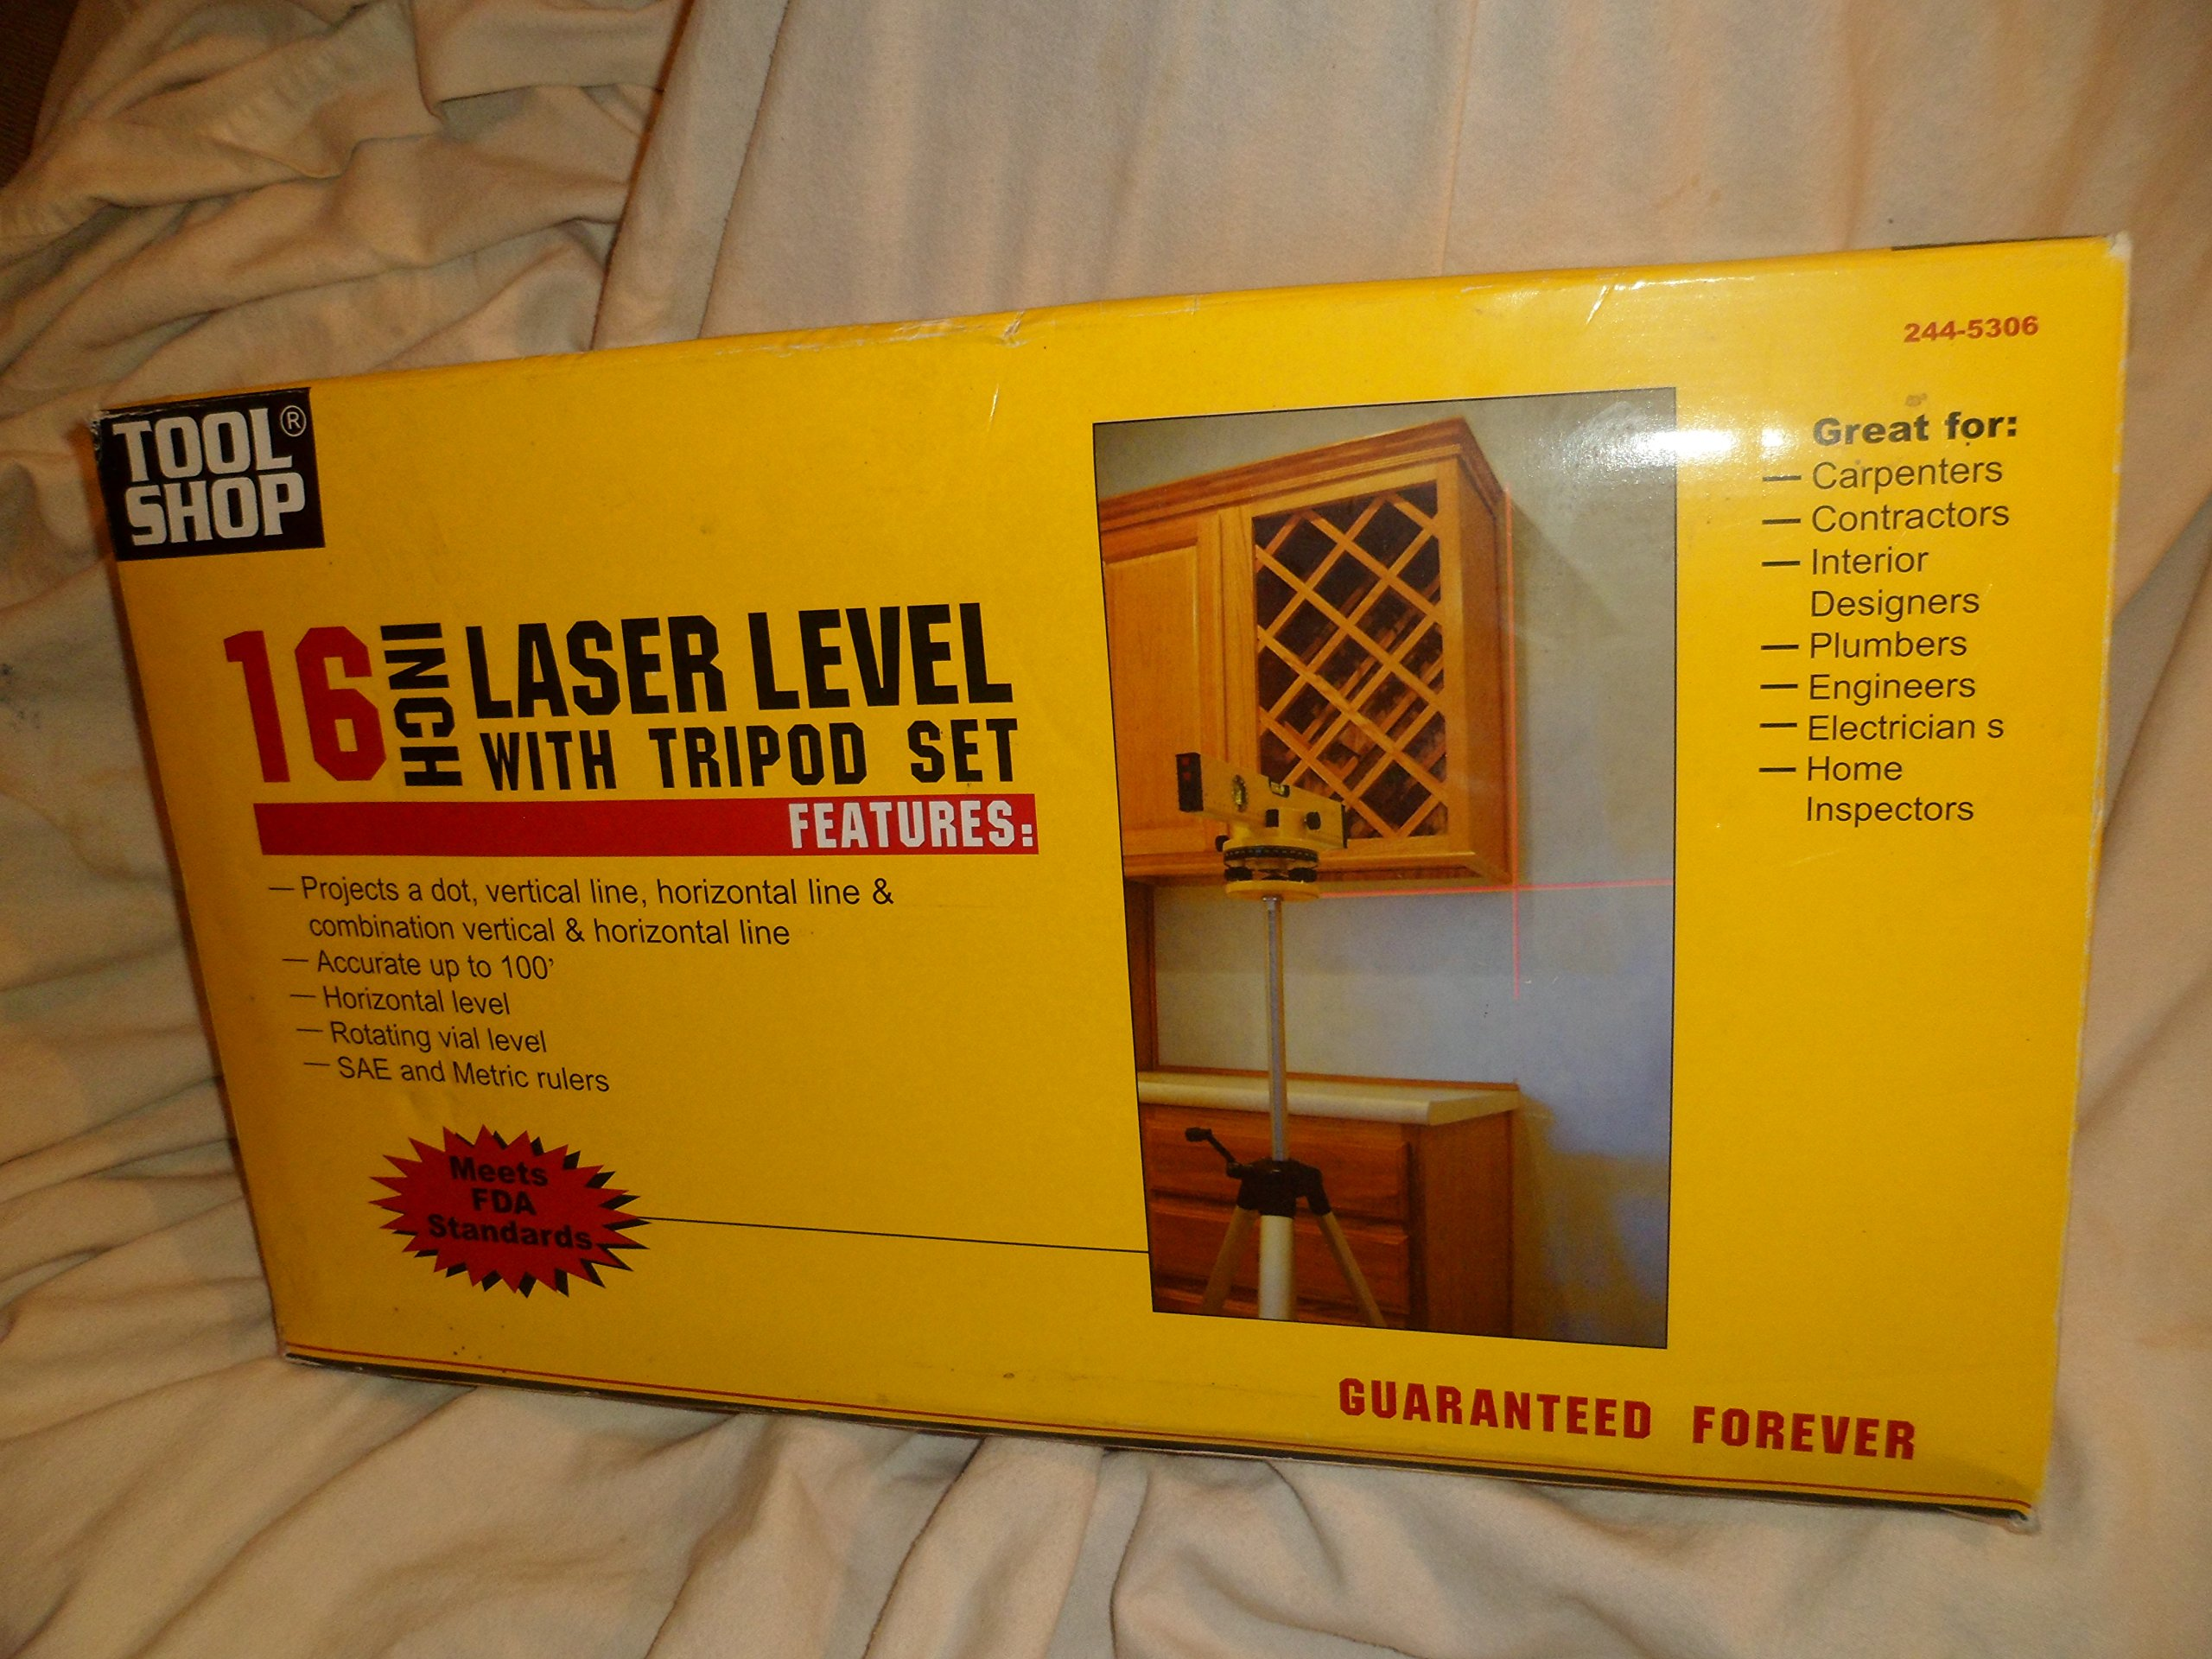 Contractors 16 Inch Laser Level With Tripod For Interior Designers And Carpenters